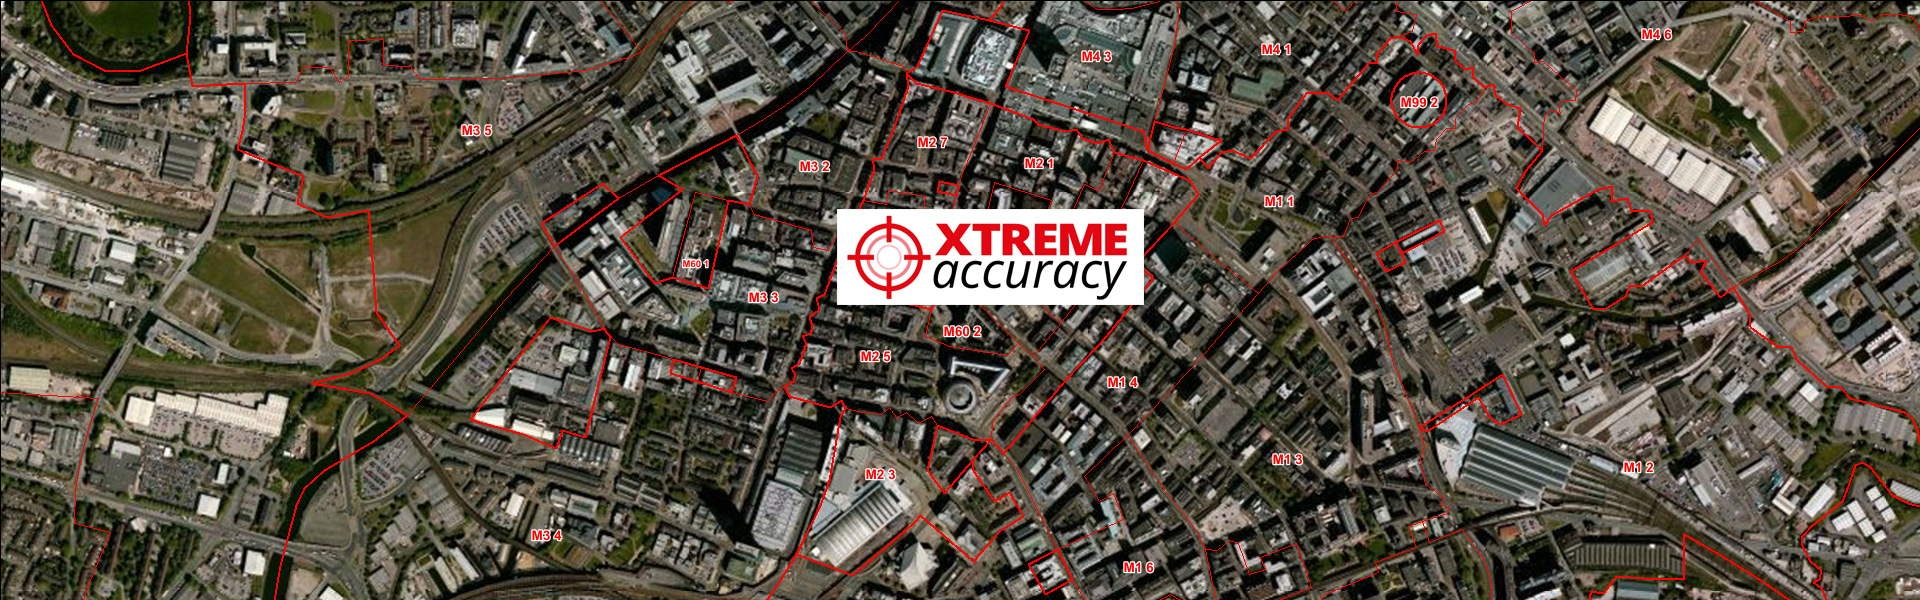 Xtreme Accuracy Postcode Boundaries for MapInfo, ArcGIS, and Google KML.